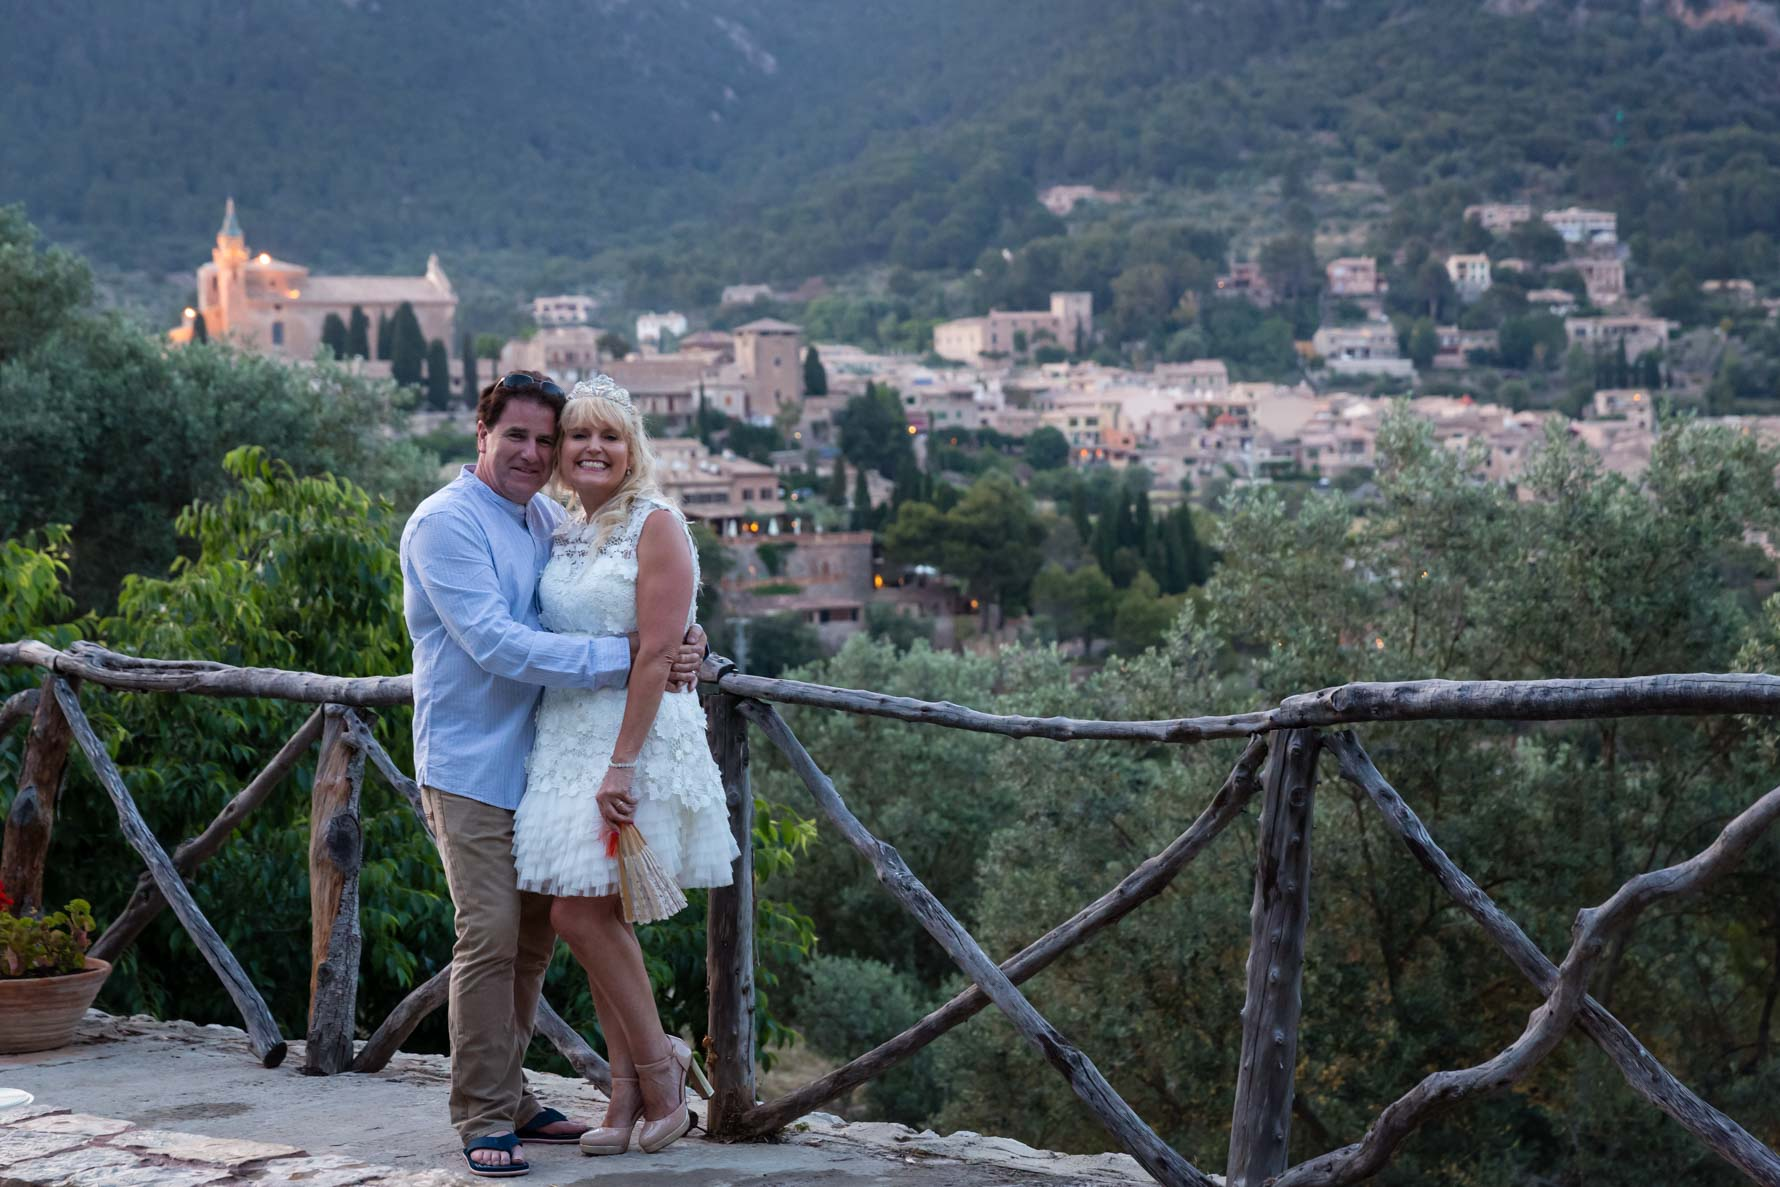 Happy couple at the end of their Mallorca wedding day overlooking Valldemossa wedding